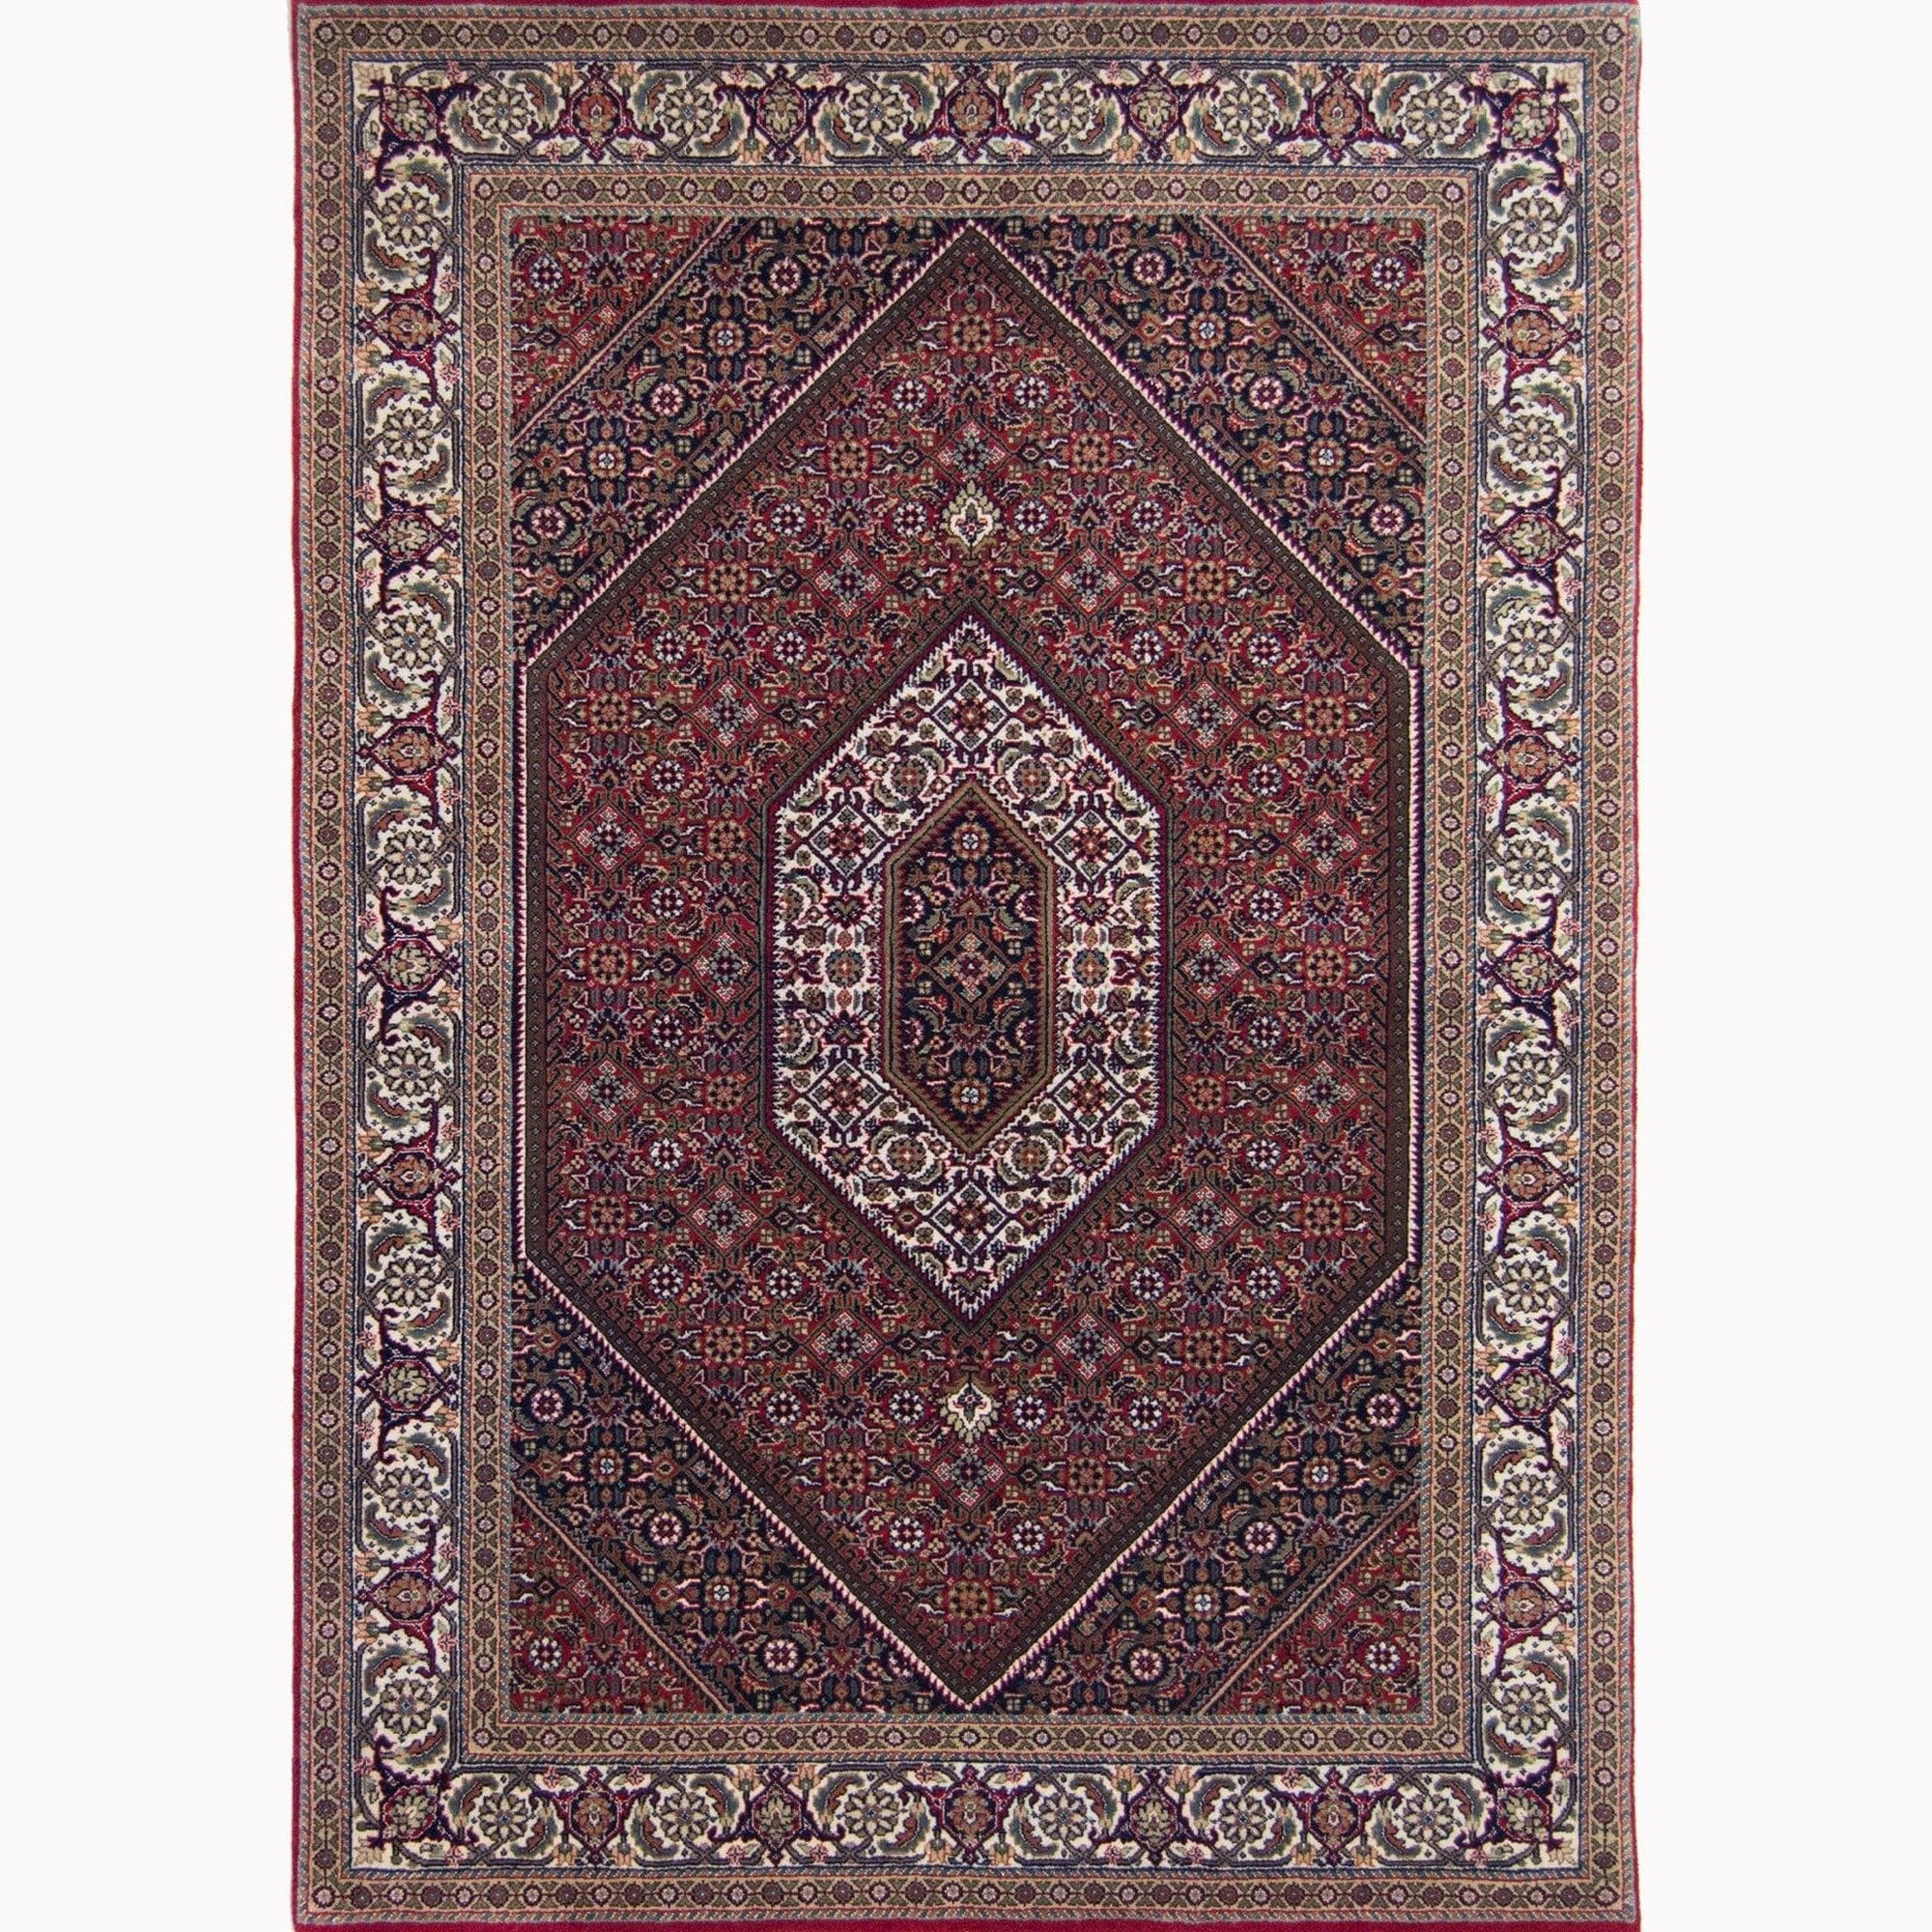 Bijar Persian-Rug | House-of-Haghi | NewMarket | Auckland | NZ | Handmade Persian Rugs | Hand Knotted Persian Rugs